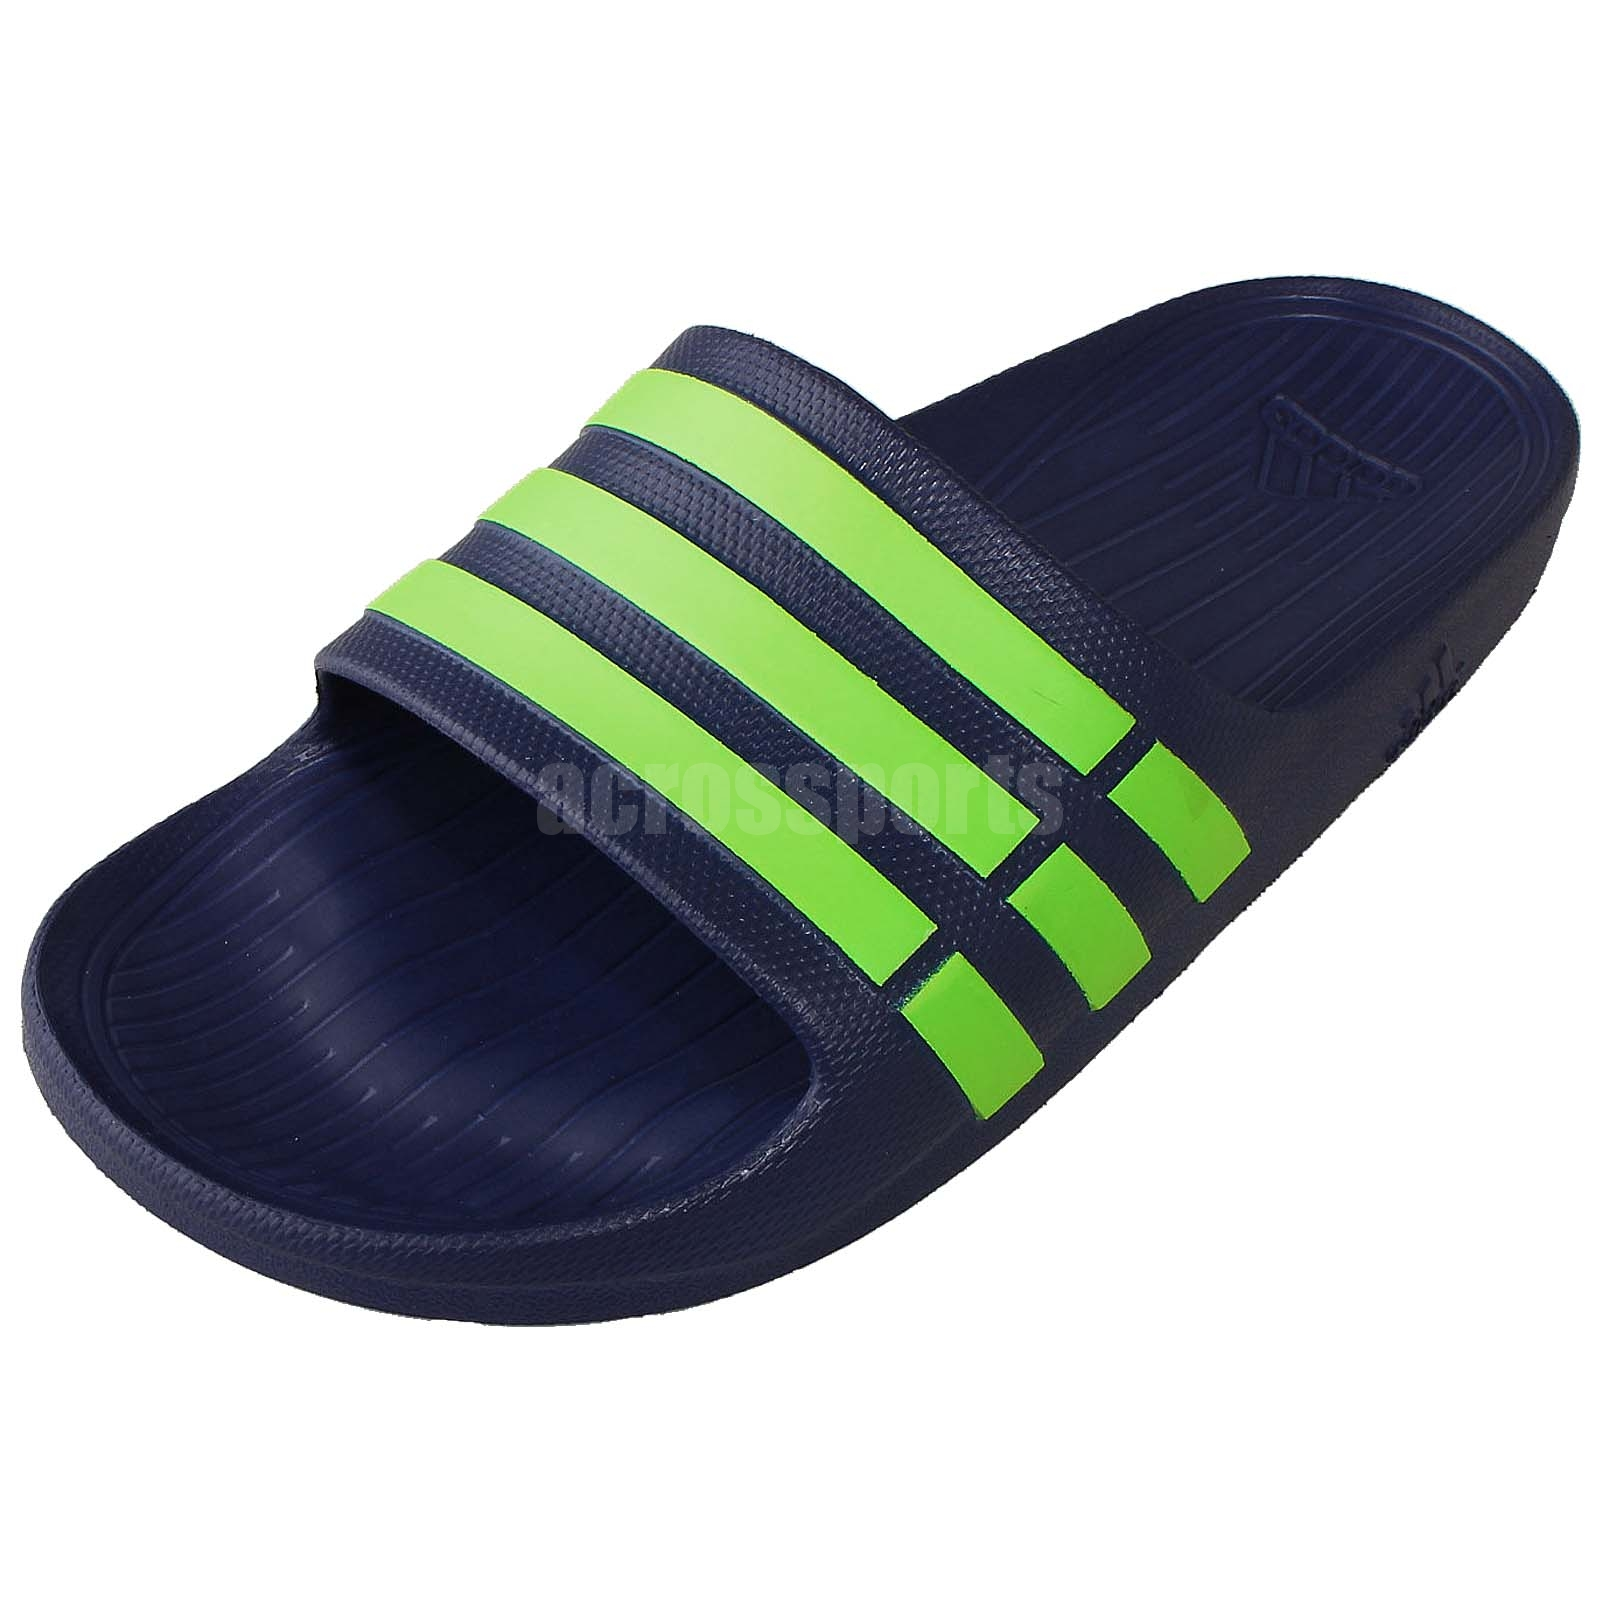 adidas Duramo Slide Men Sports Slippers Navy Green Sandal Shoes NWOB G95489